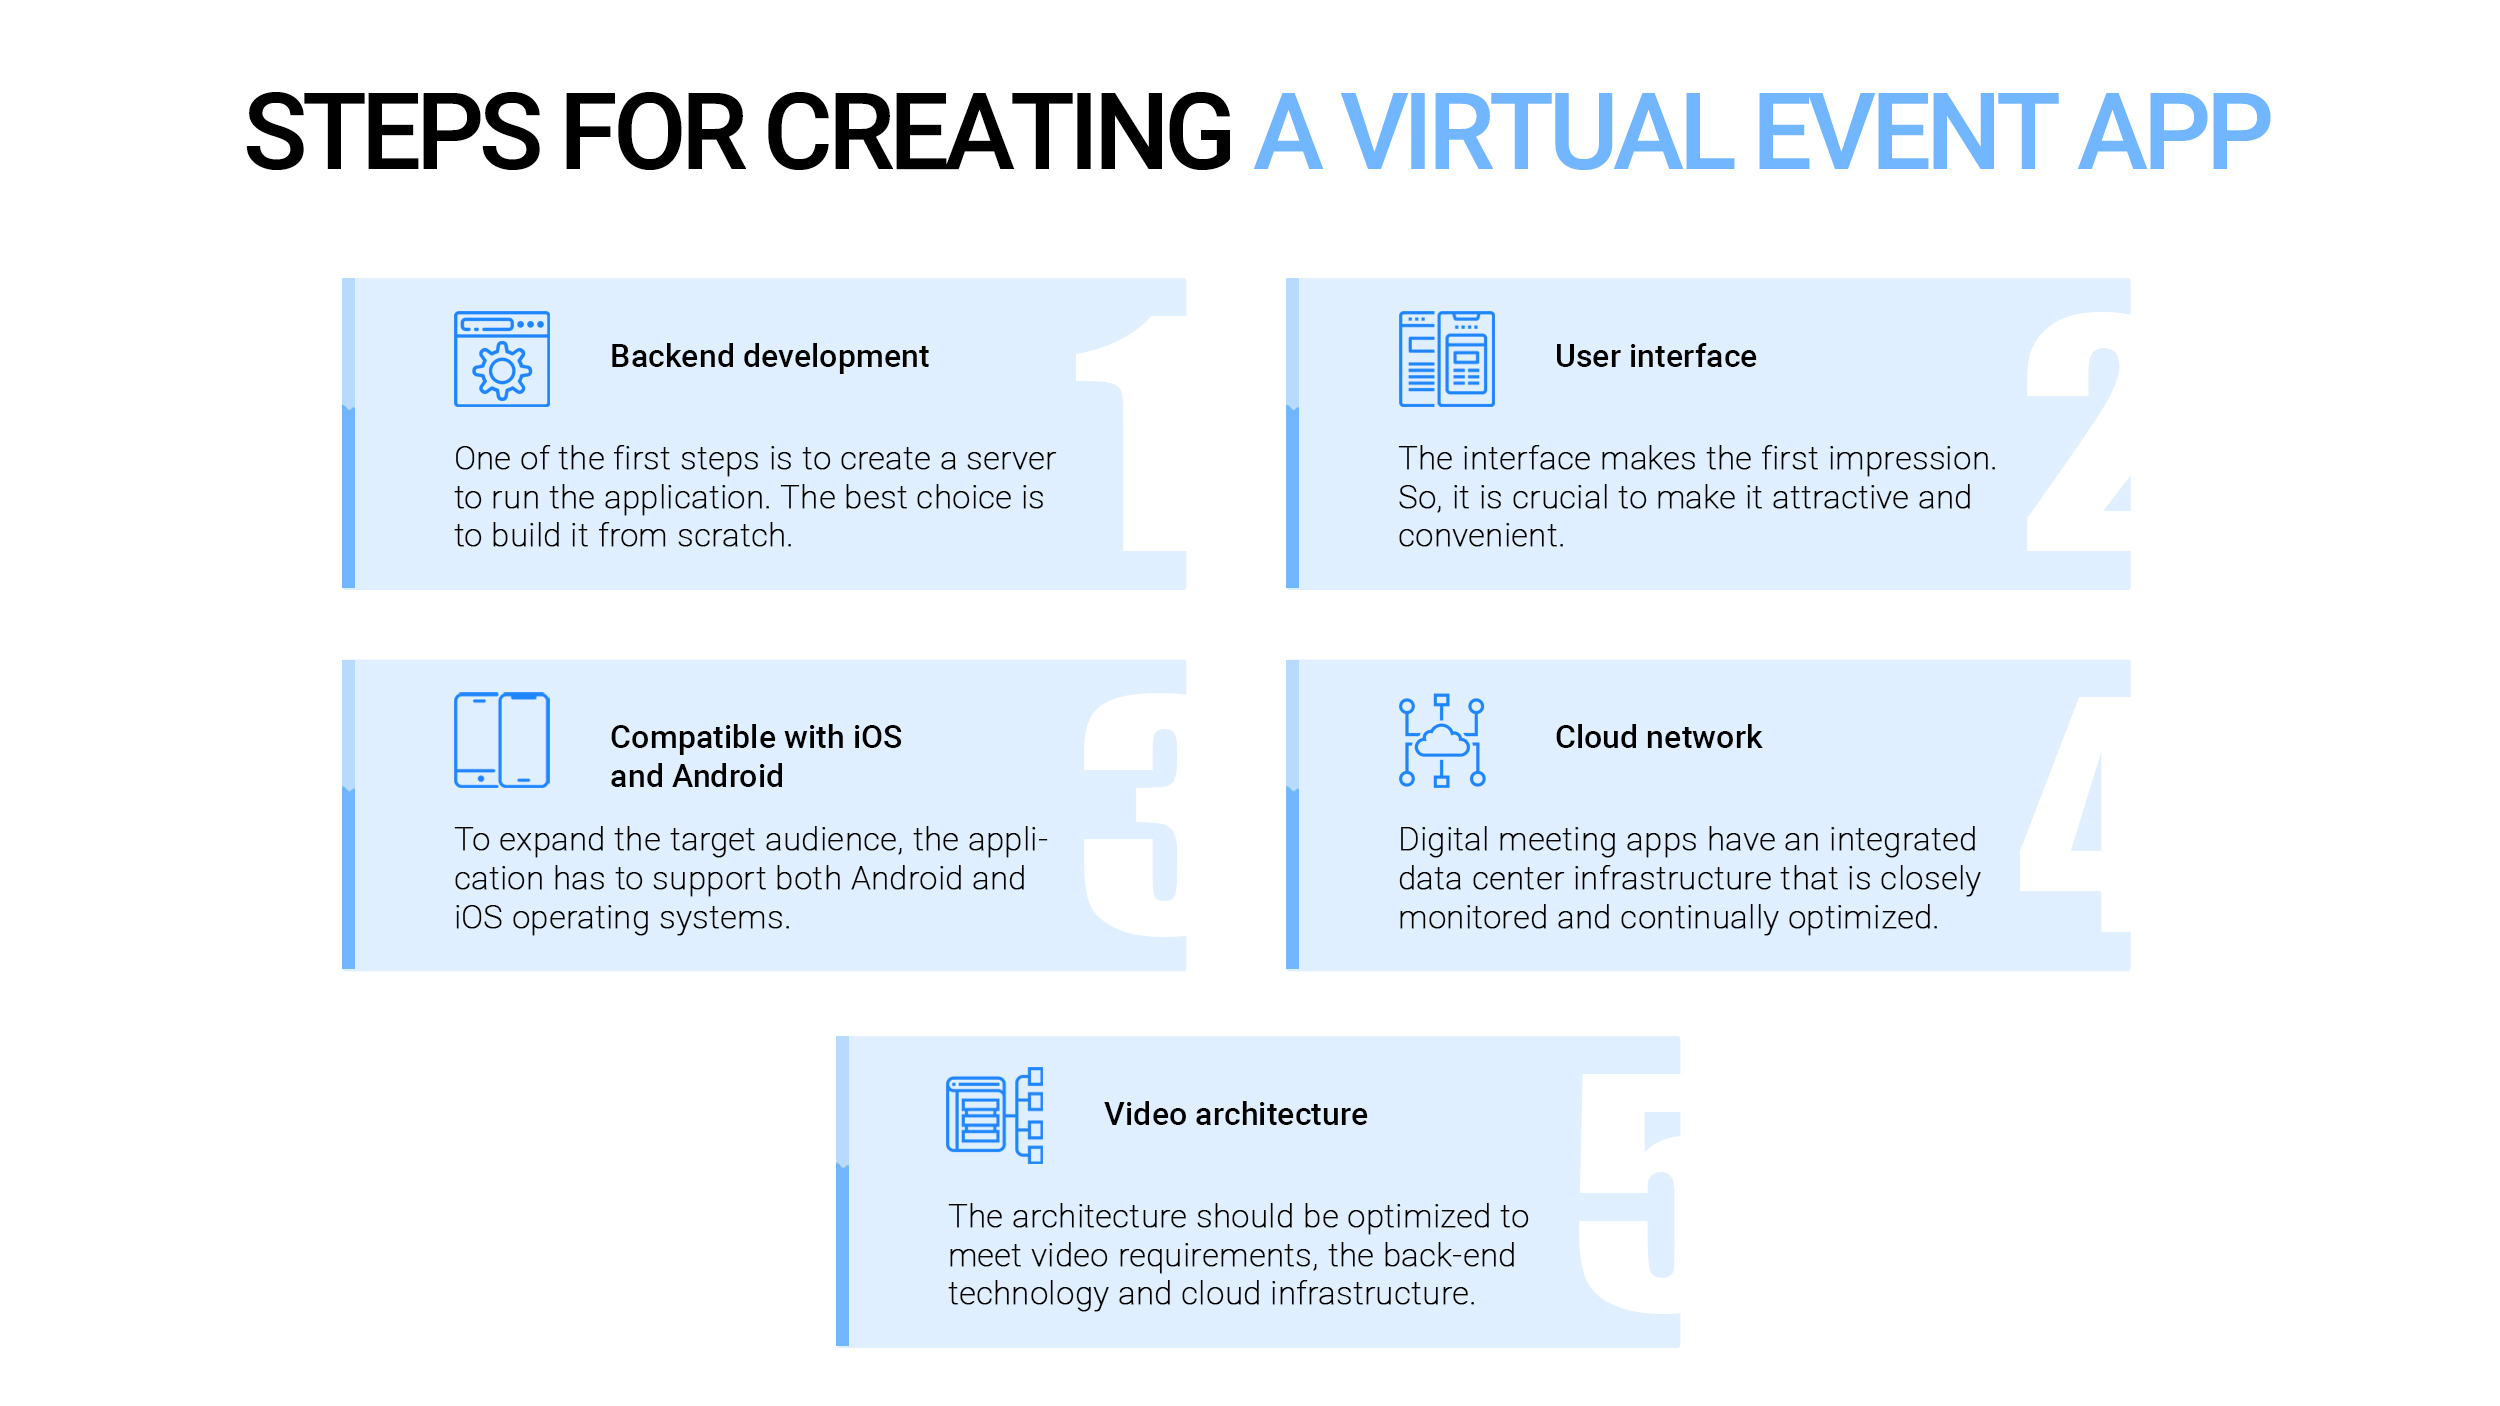 Steps for Creating a Virtual Event App